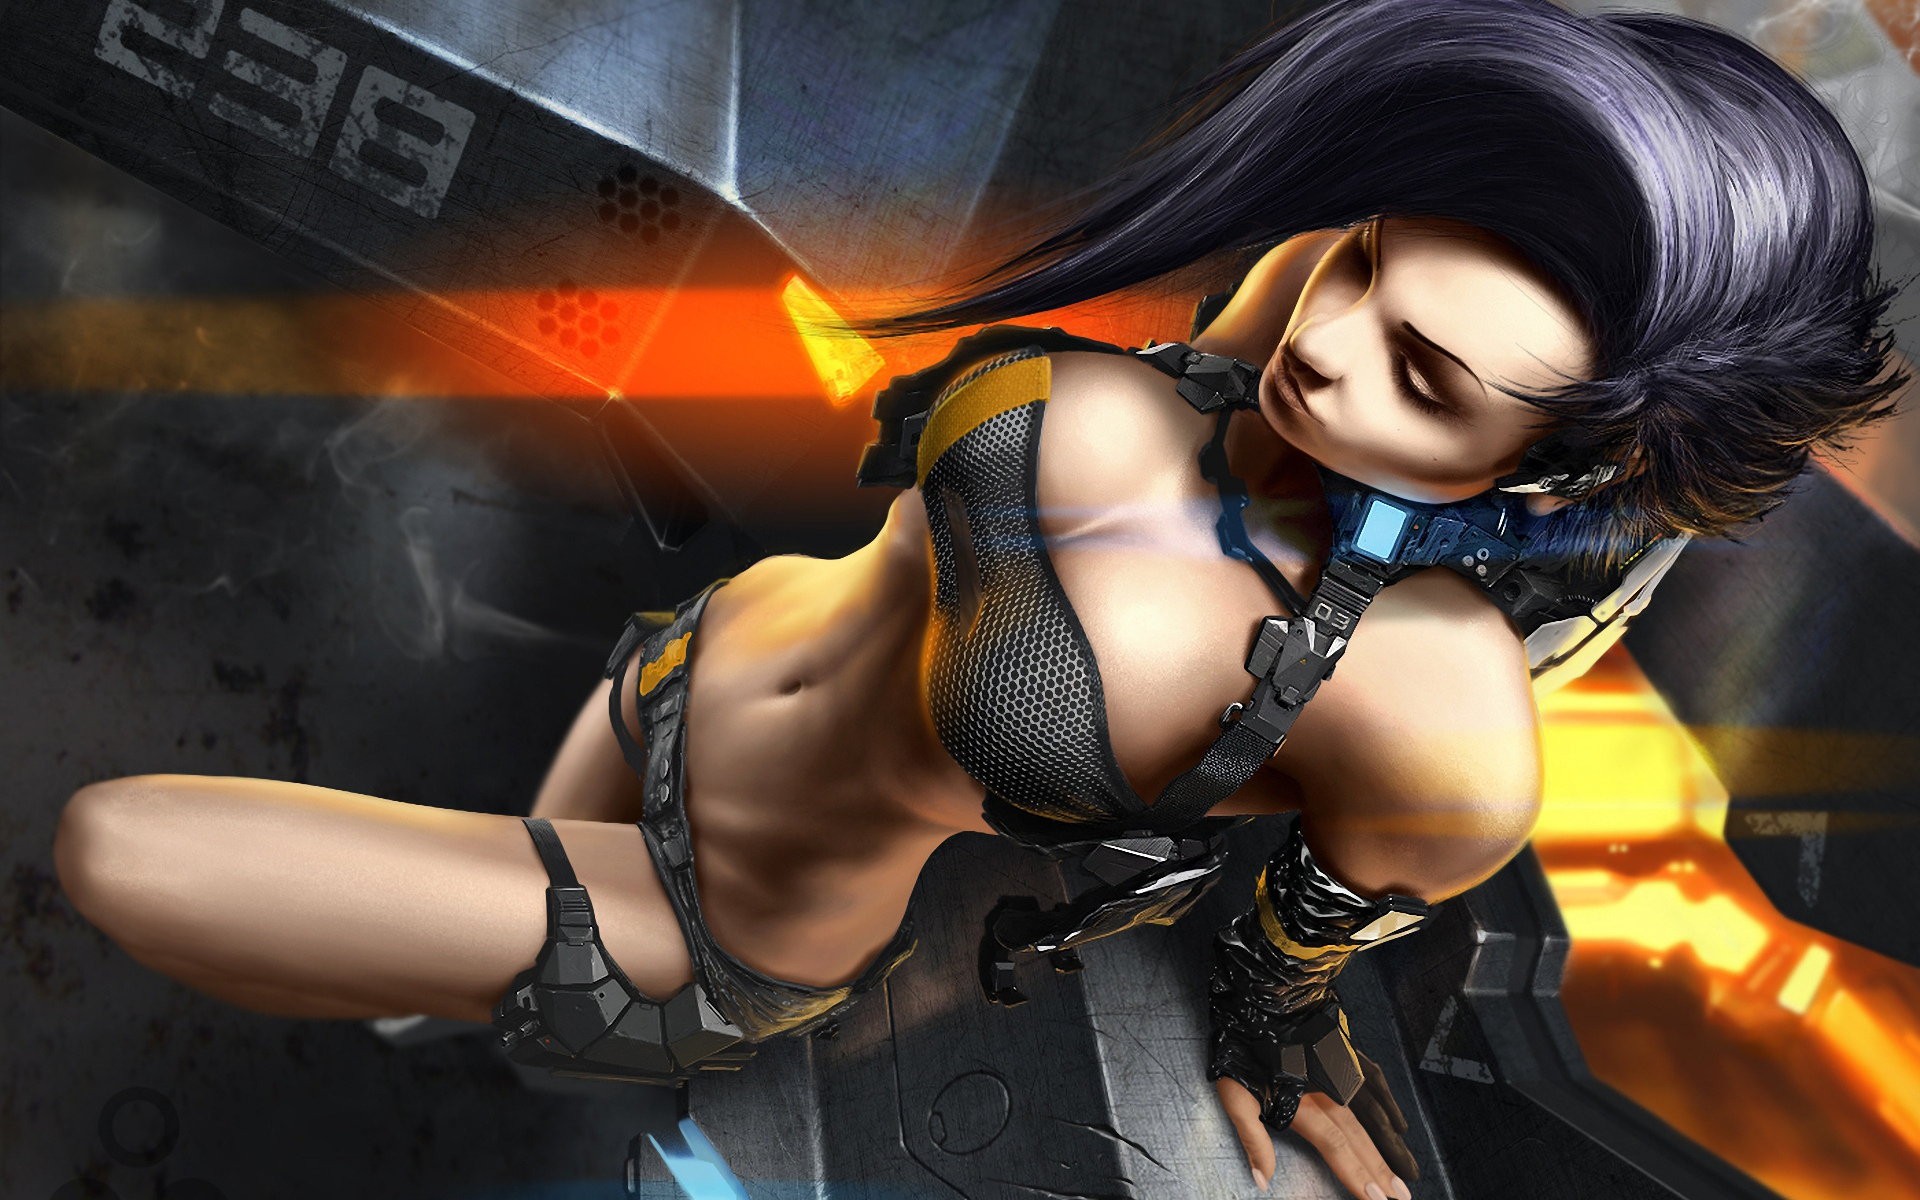 Lara croft vs monsters 3gp sexy images